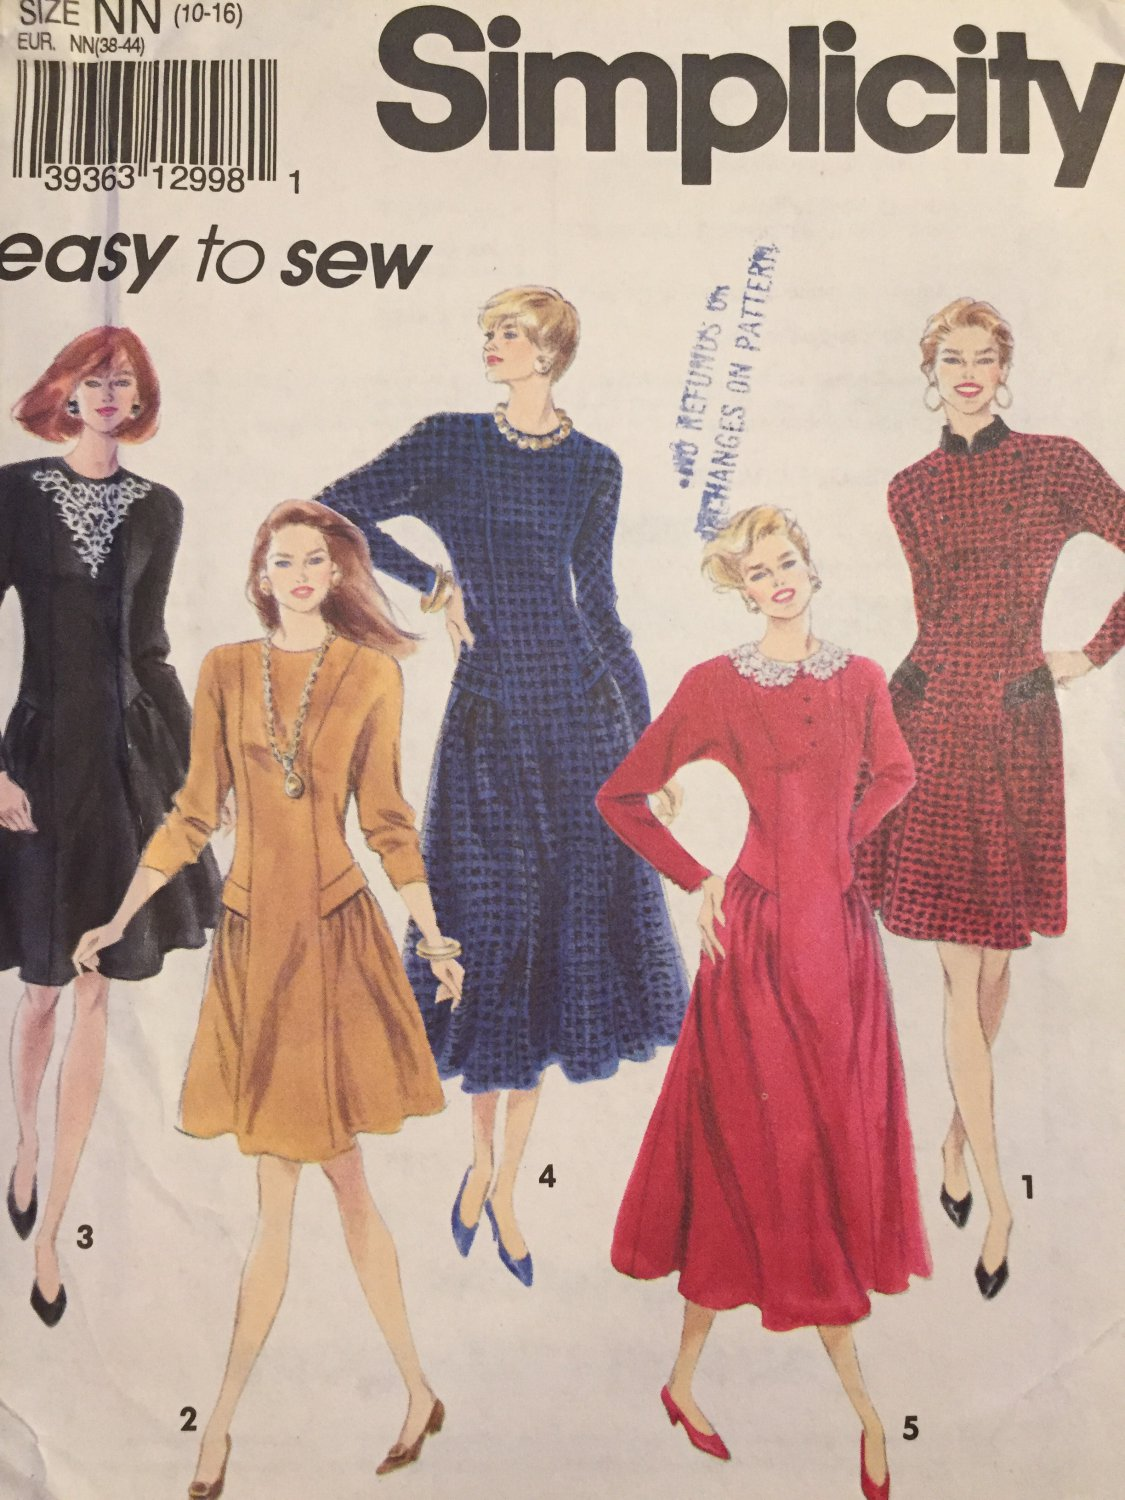 Simplicity sewing pattern 7998 UNCUT misses Princess Seam Flared dress in two lengths sizes 10 -16